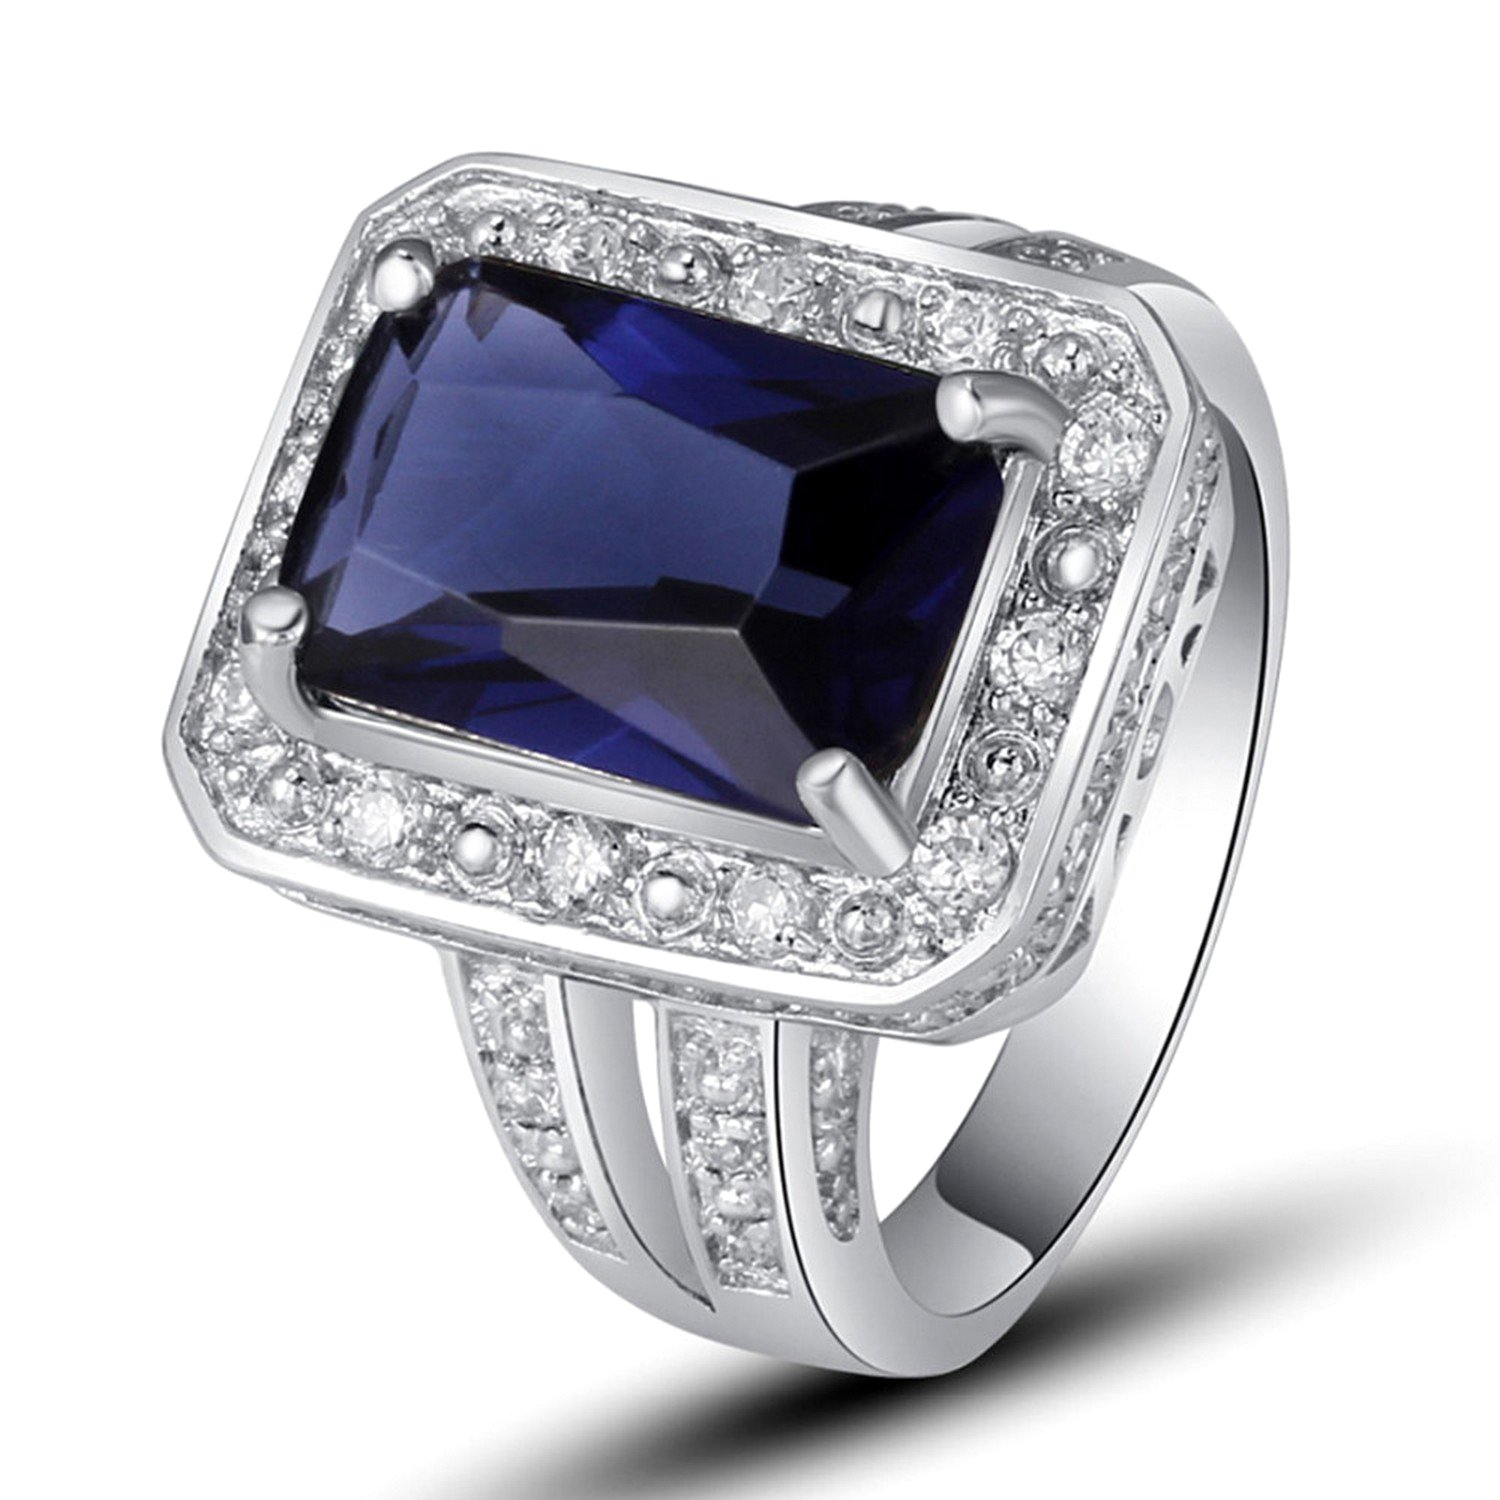 Slyq Jewelry Unisex Gorgeous Jewelry Cubic Zirconia Rectangle womens engagement rings fashion ring for women